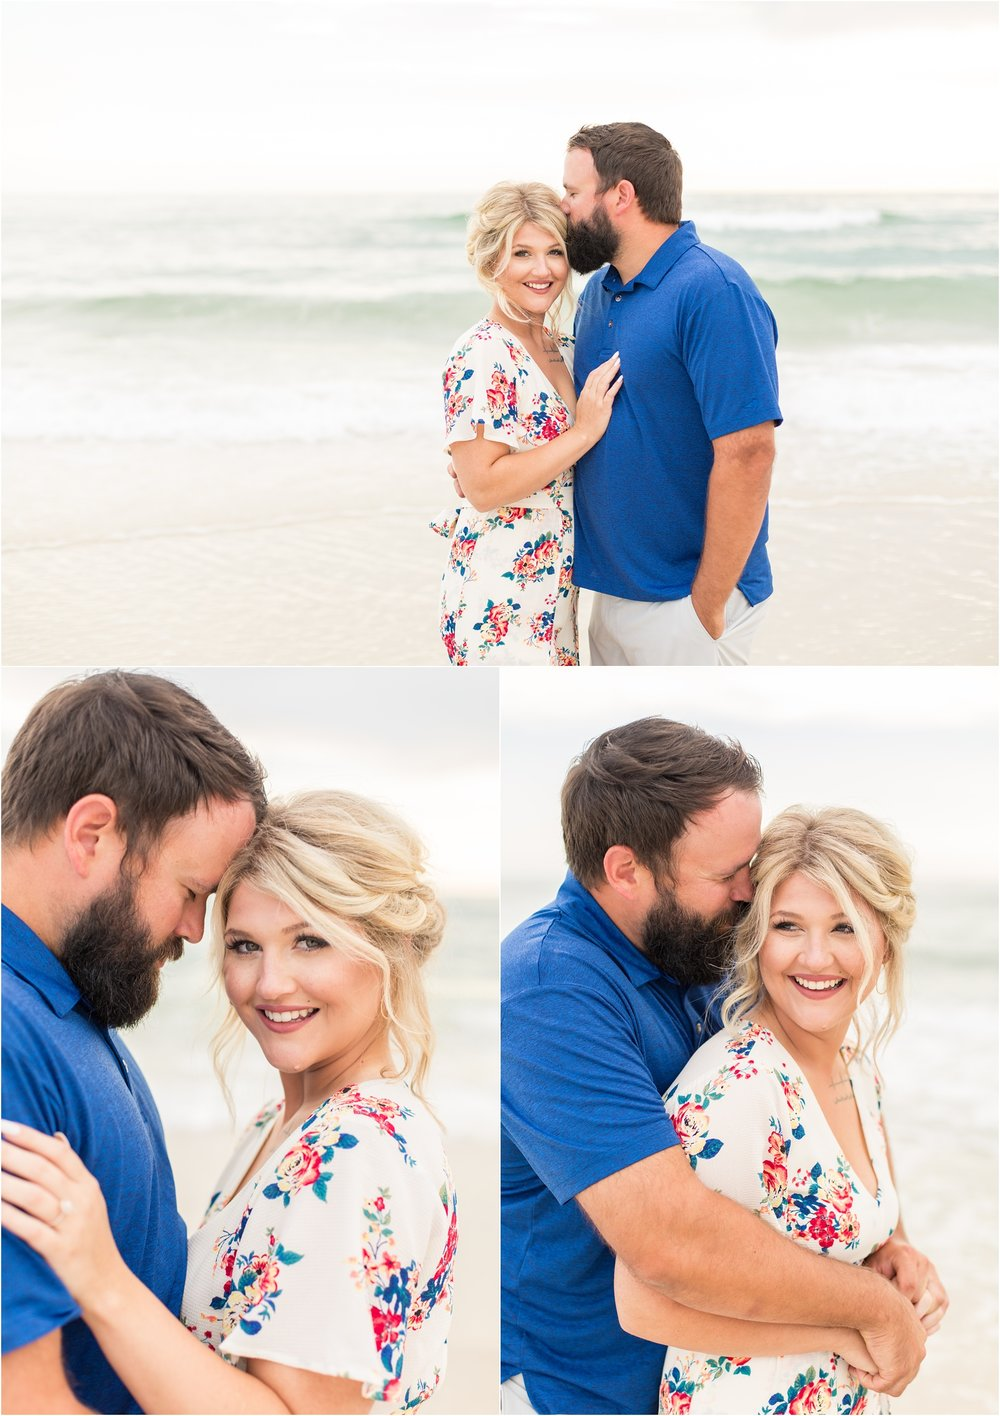 Savannah Eve Photography- Madison & Tim's Engagements-2.jpg